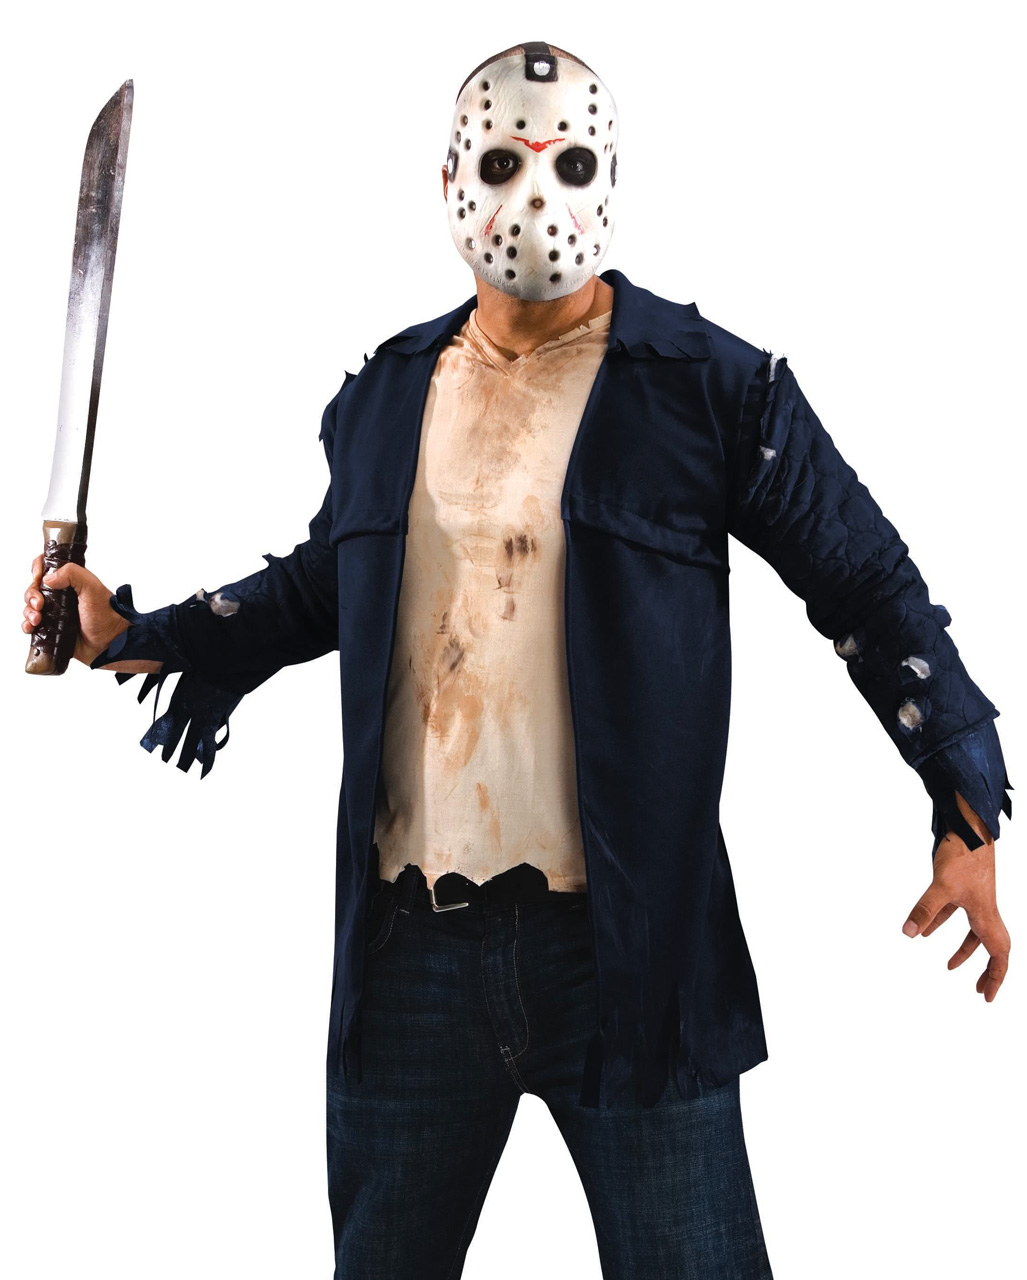 jason deluxe costume with hockey mask | horror-shop